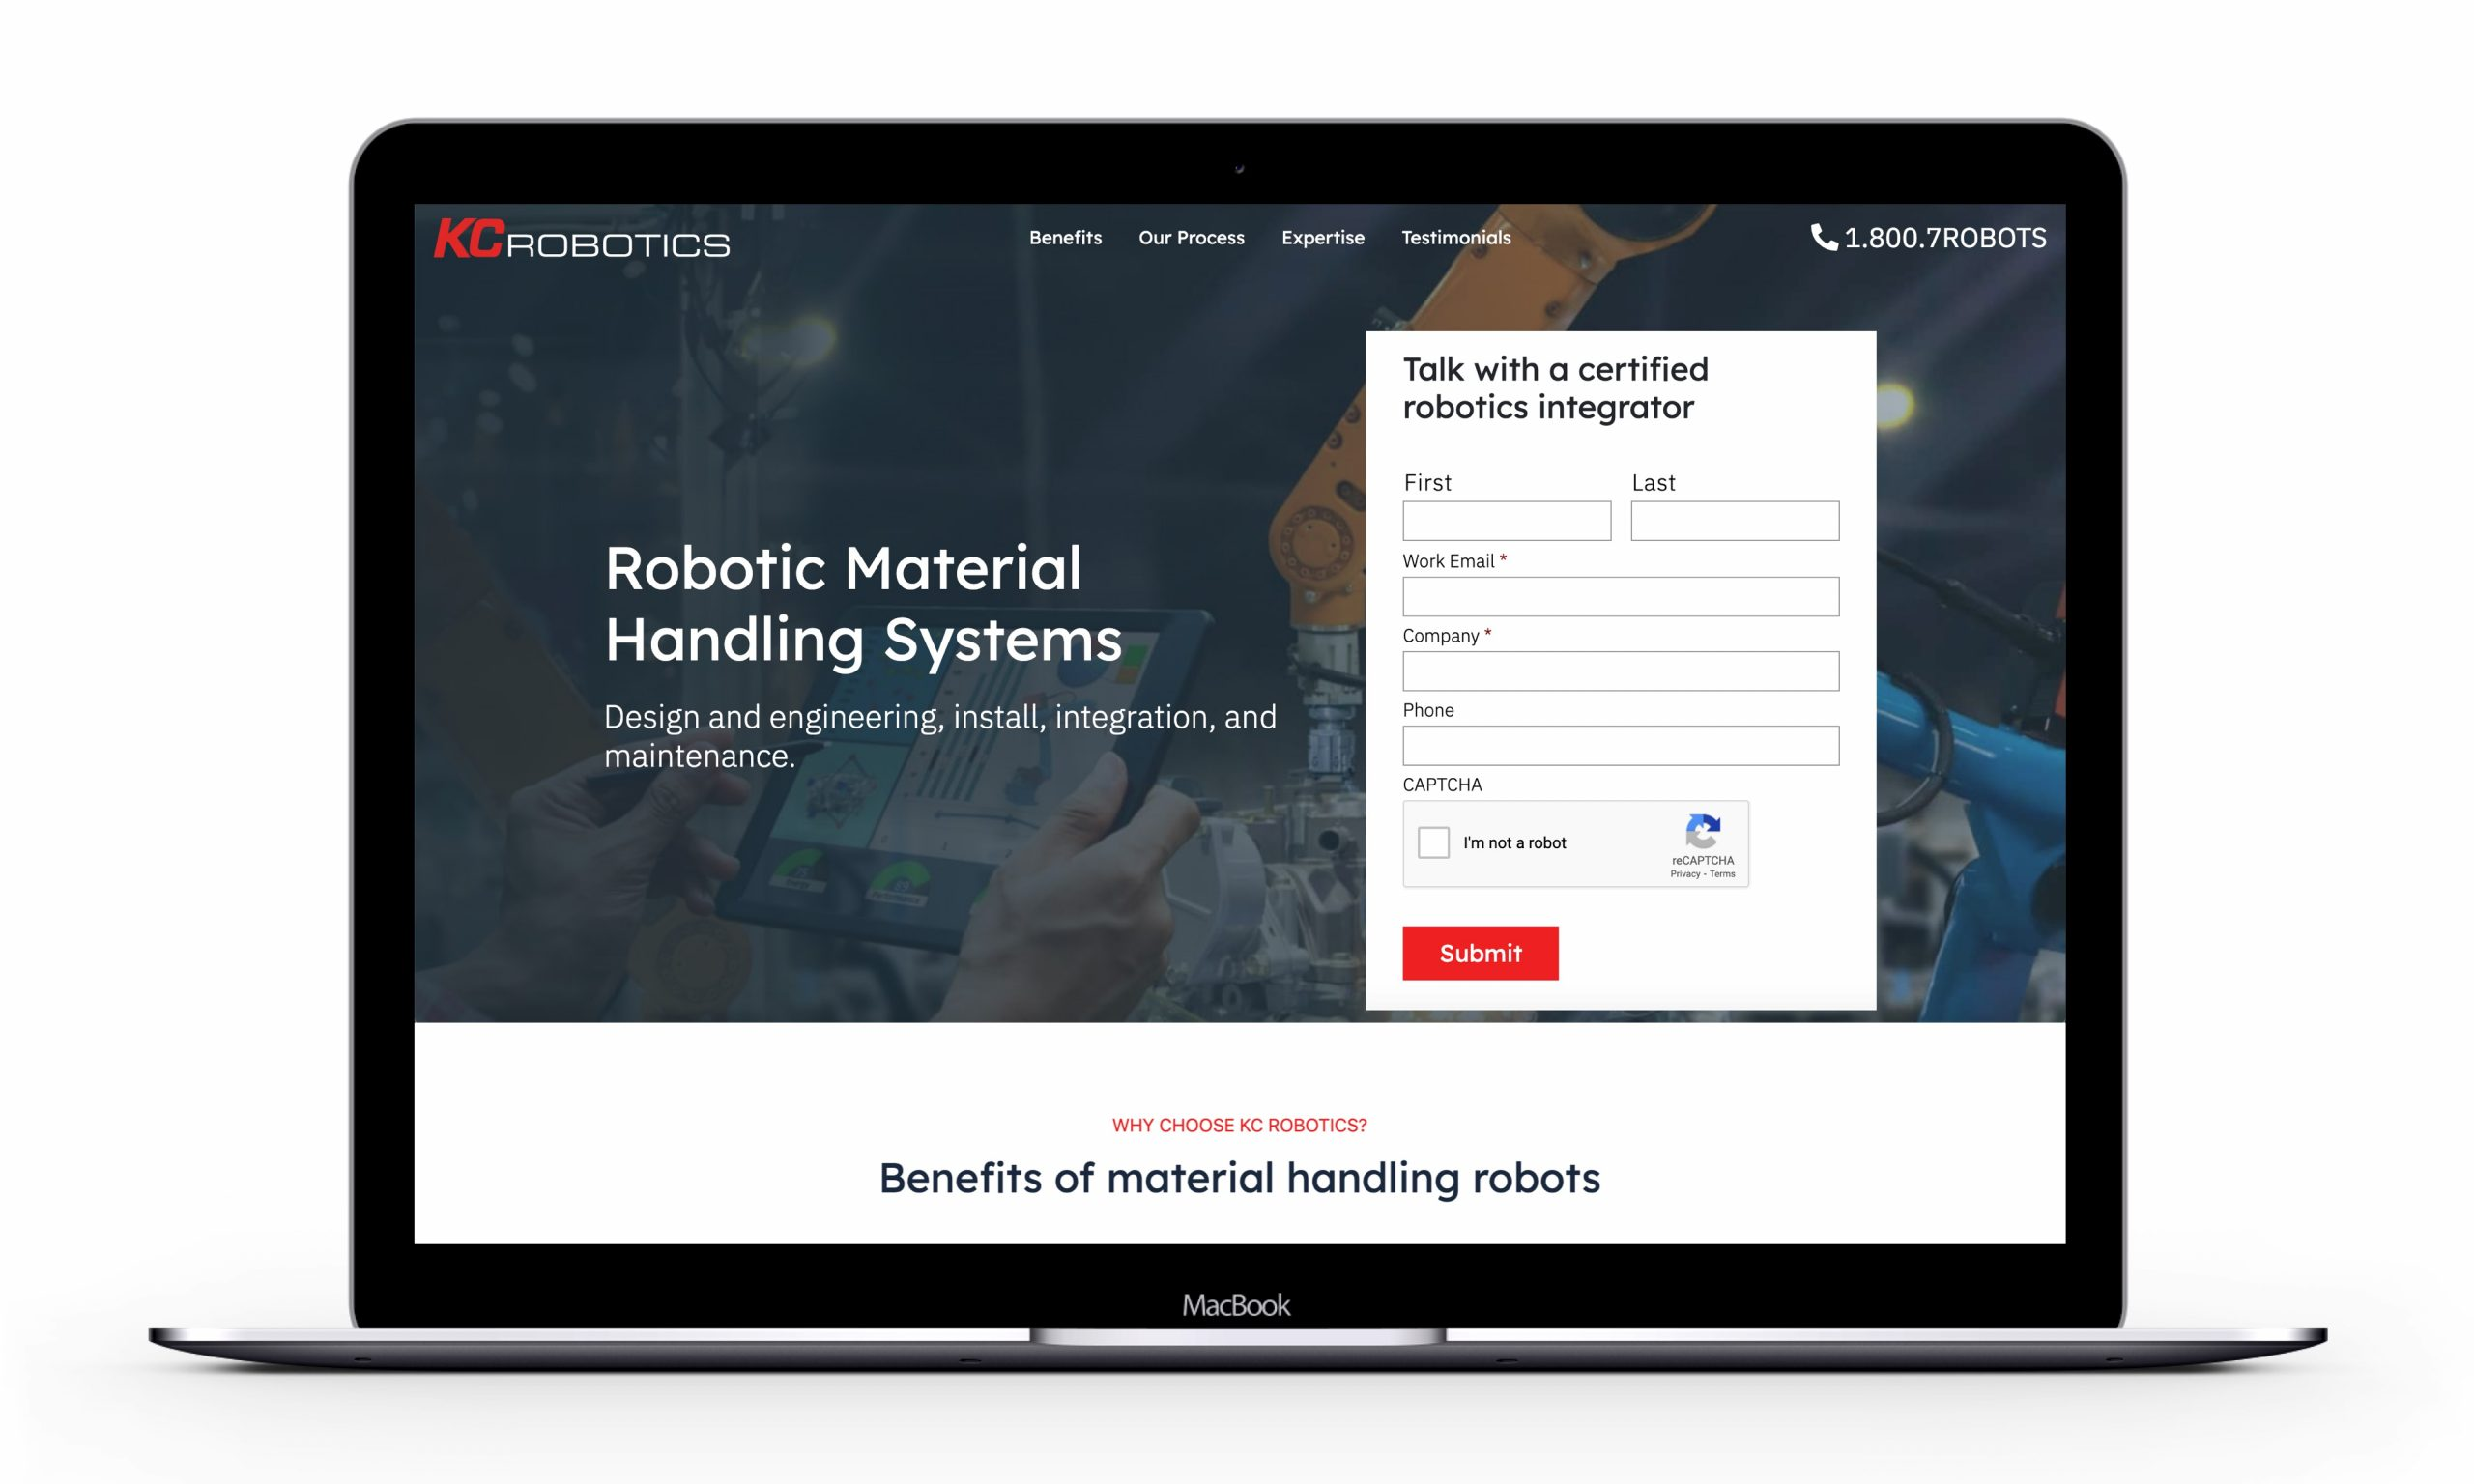 KC Robotics hero in landing page designed to convert